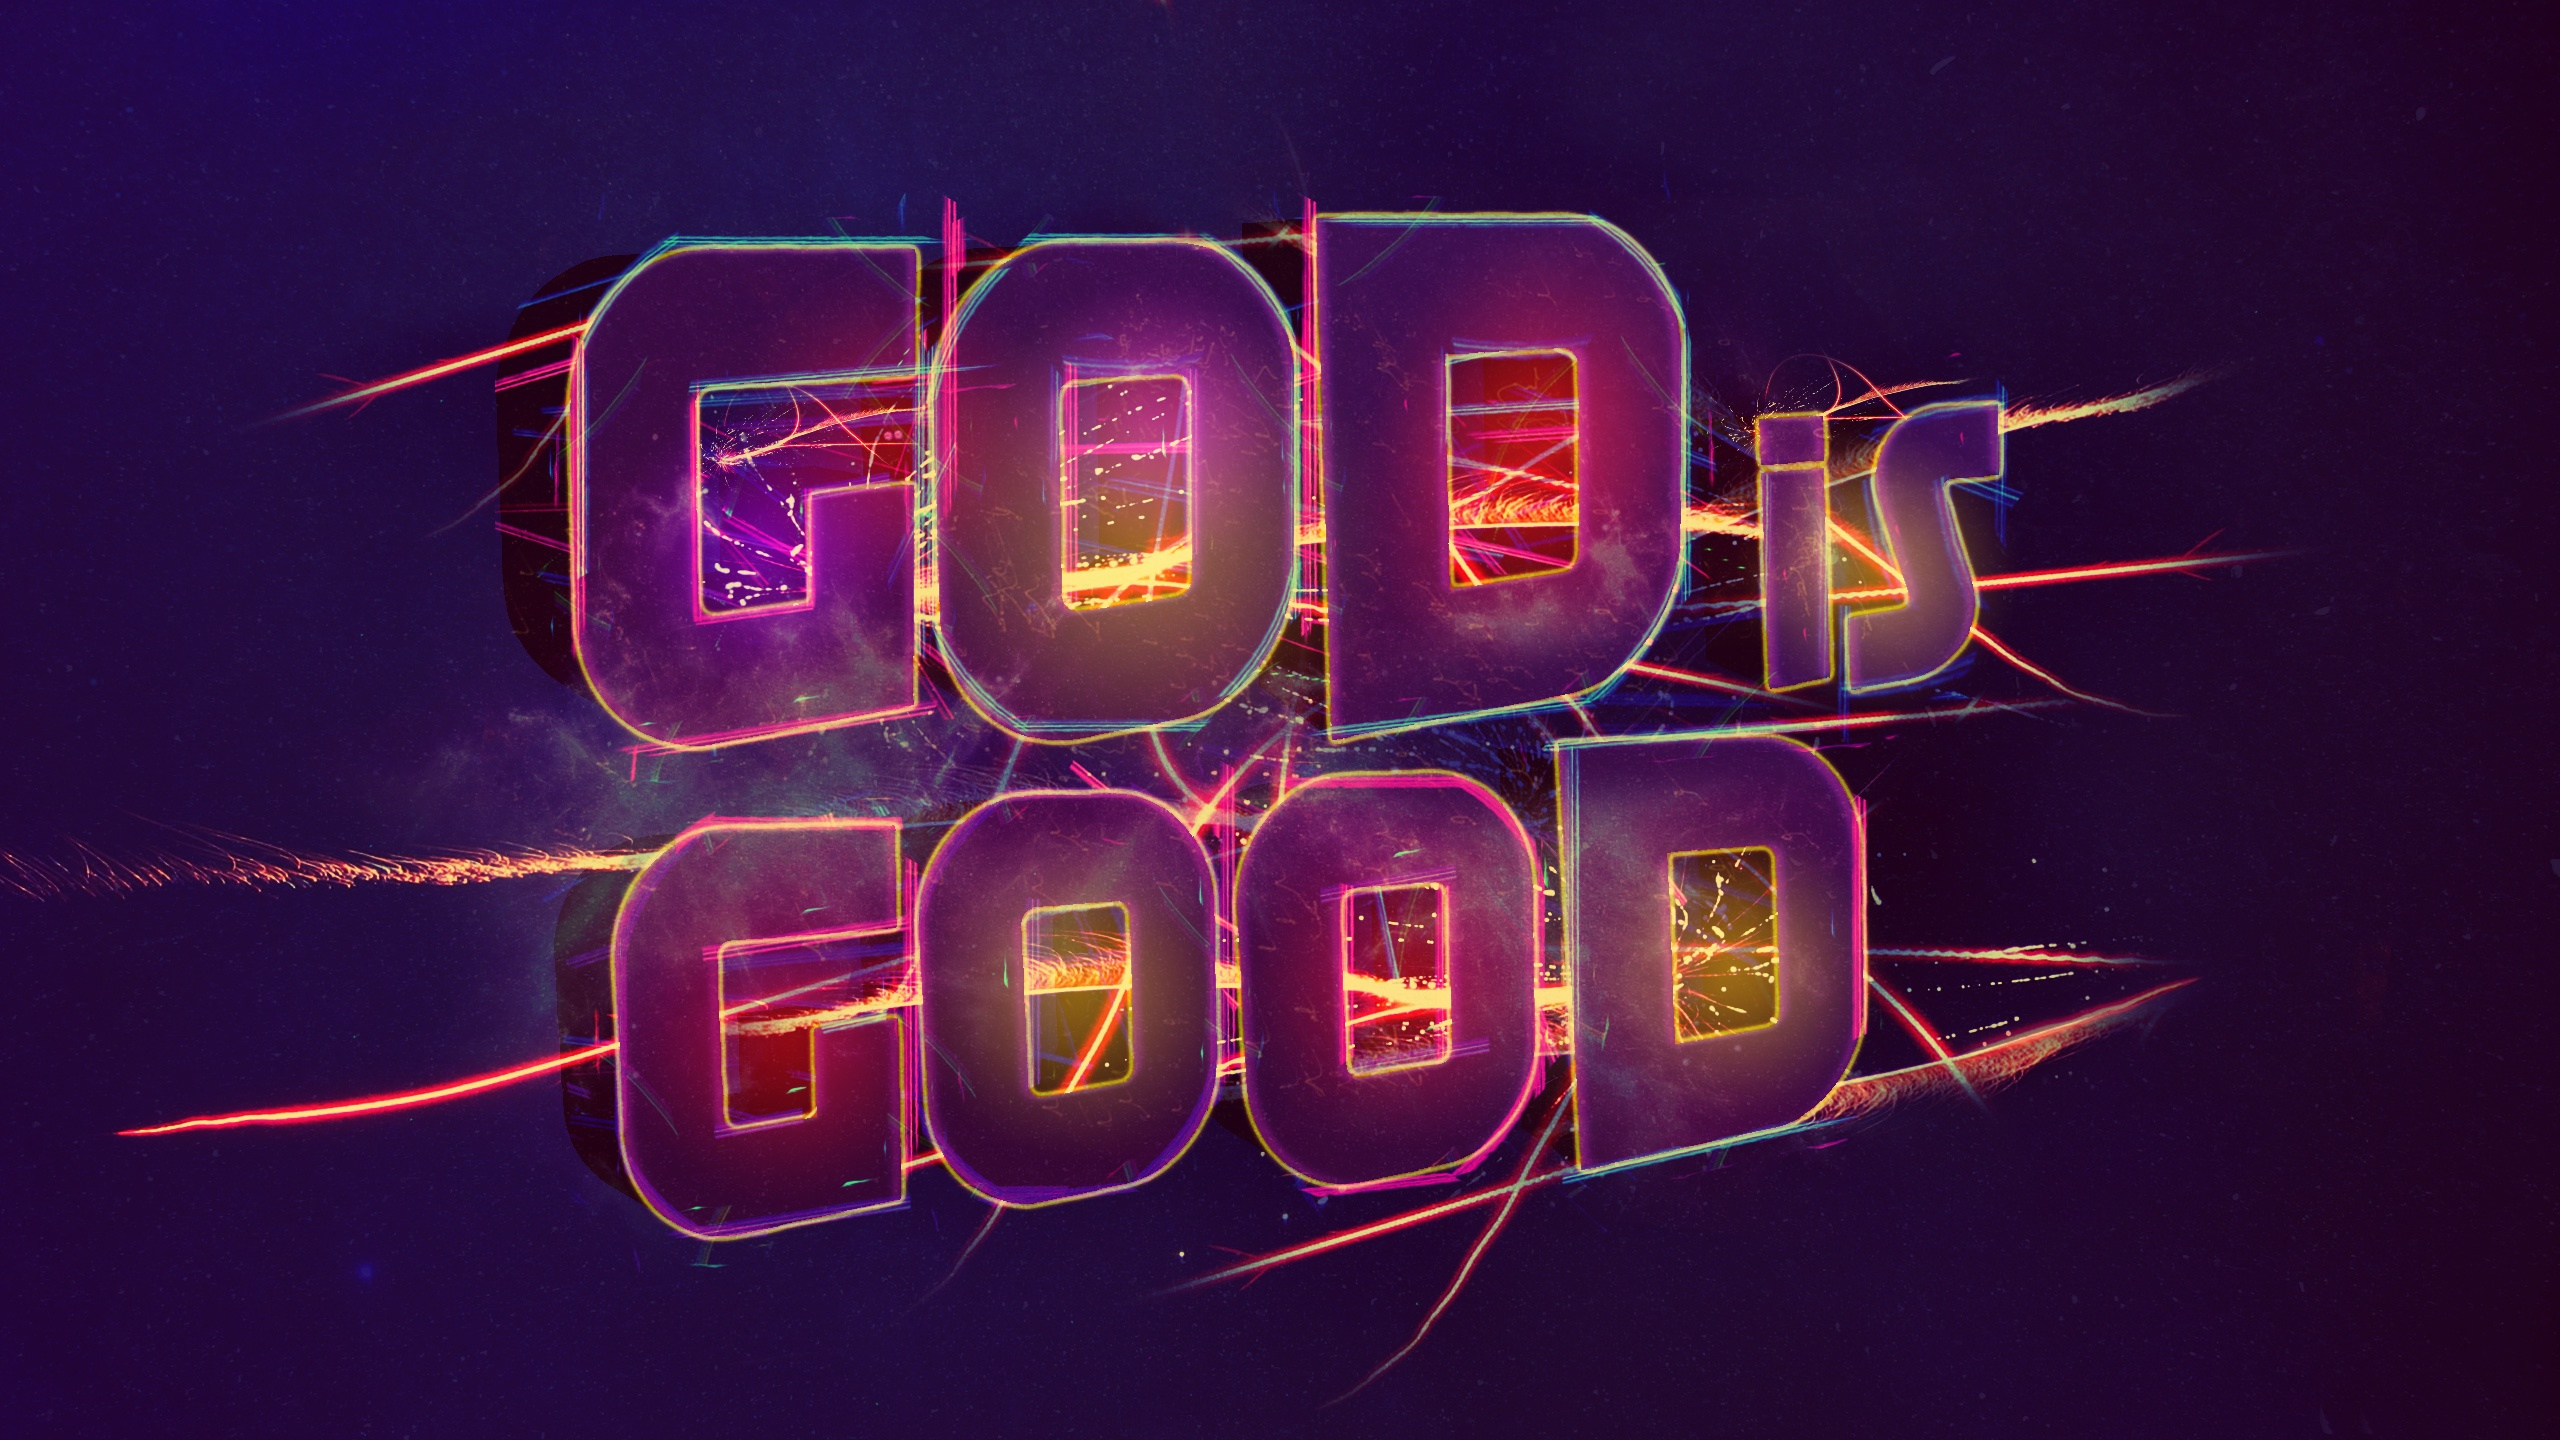 God is good wallpapers 2560x1440 965670 - Download god is good all the time ...